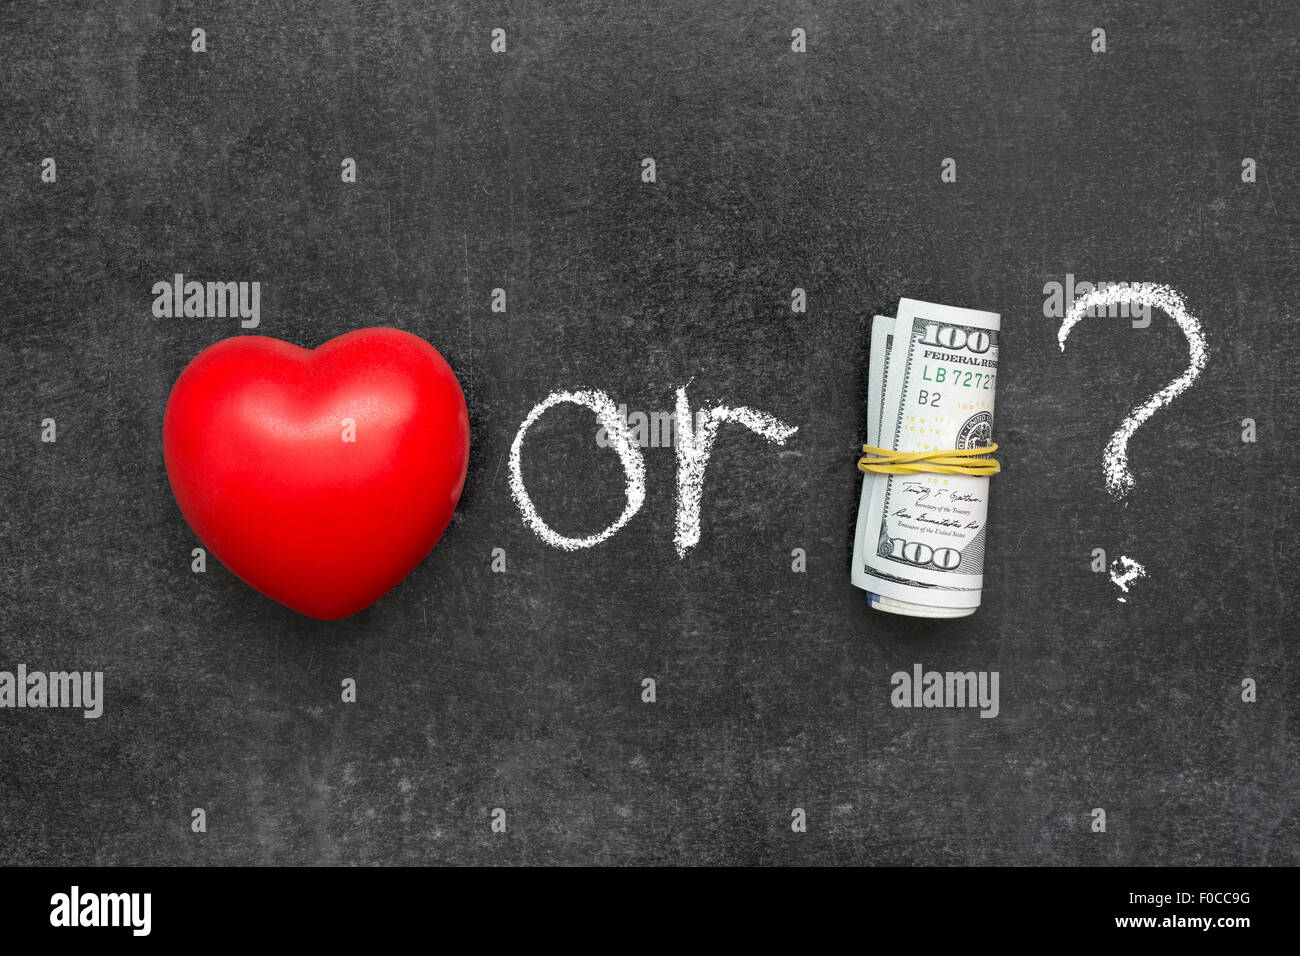 d1b9a682c7d9 love or money concept handwritten on blackboard with red heart symbol and  roll of US dollars